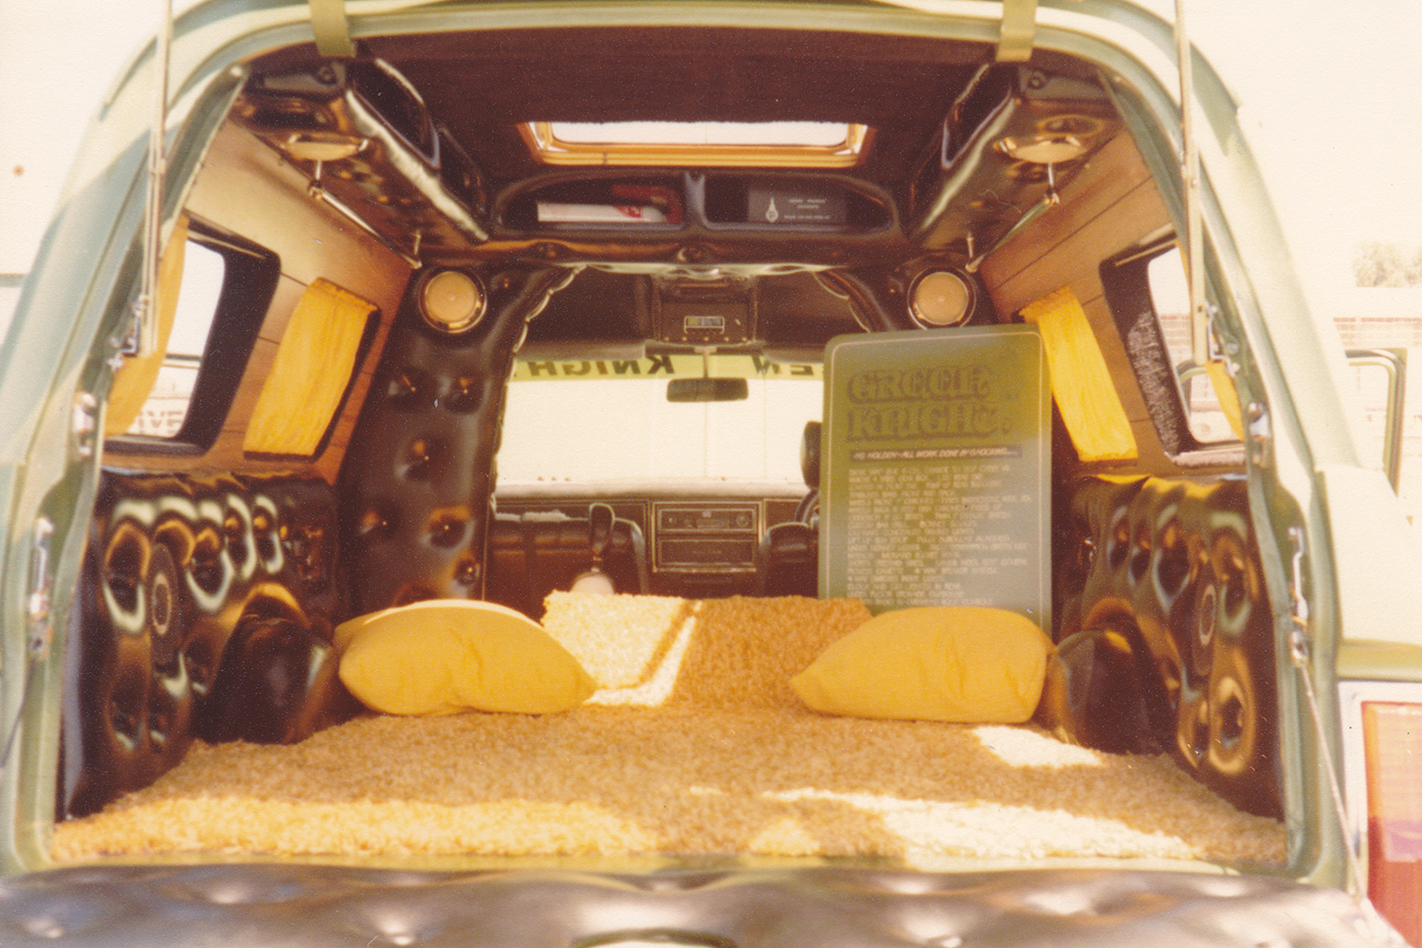 Green -Knight -HG-Panelvan -interior -rear